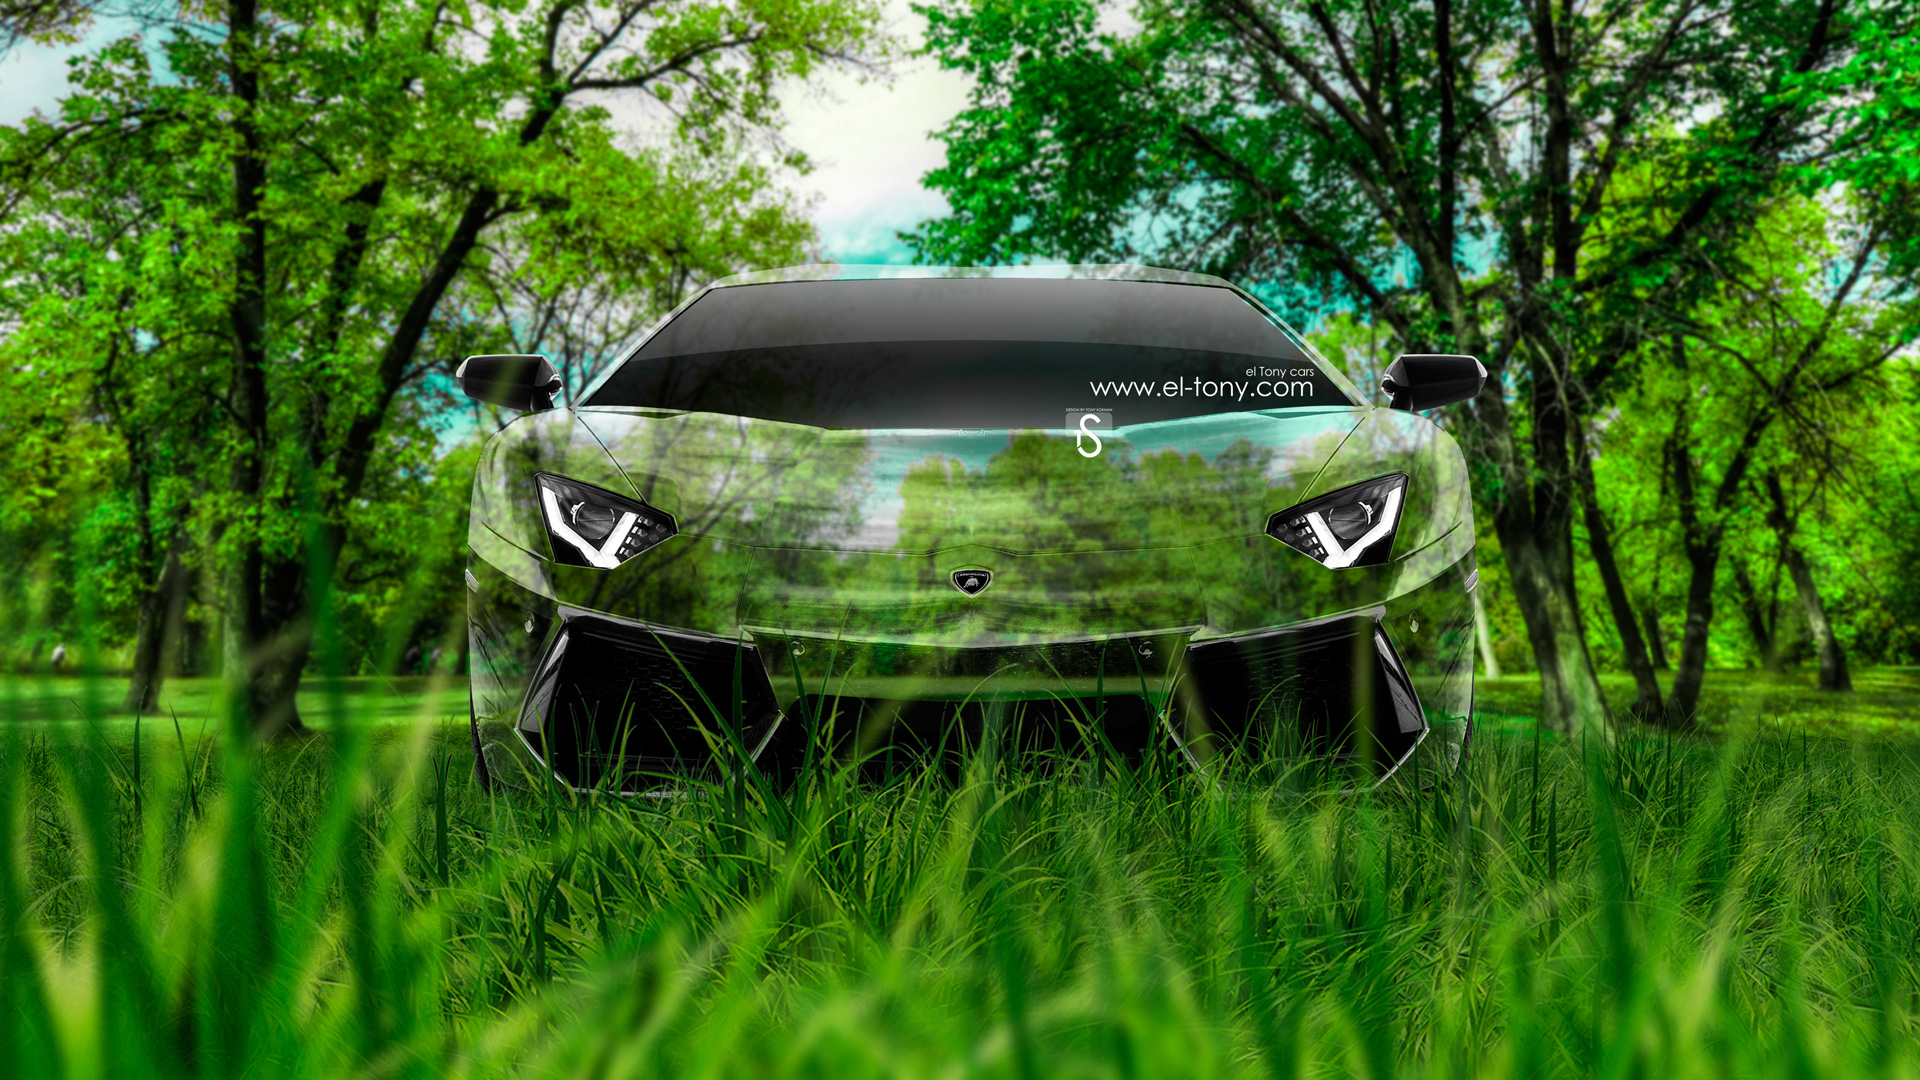 Charmant Lamborghini Aventador Front Crystal Nature Car 2014